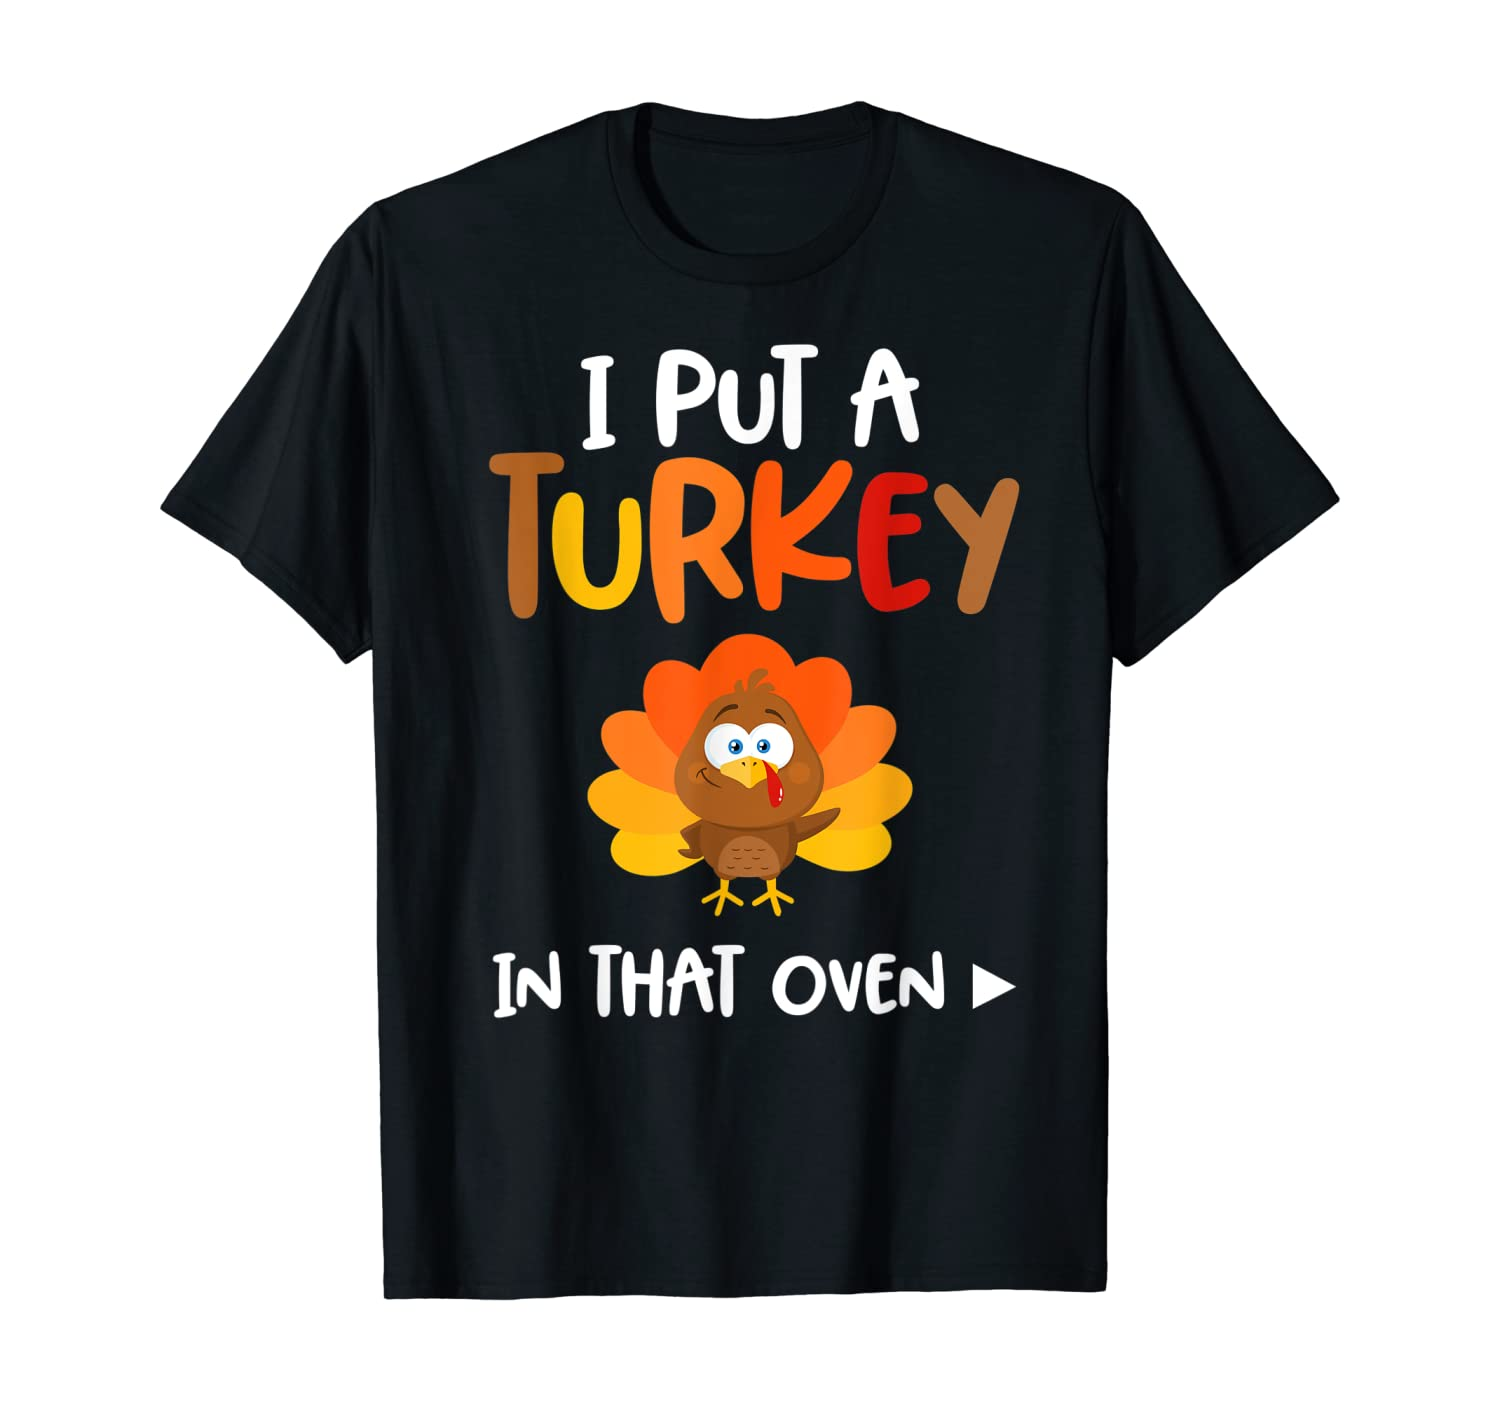 I Put A Turkey In That Oven There's A Turkey In This Oven T-Shirt